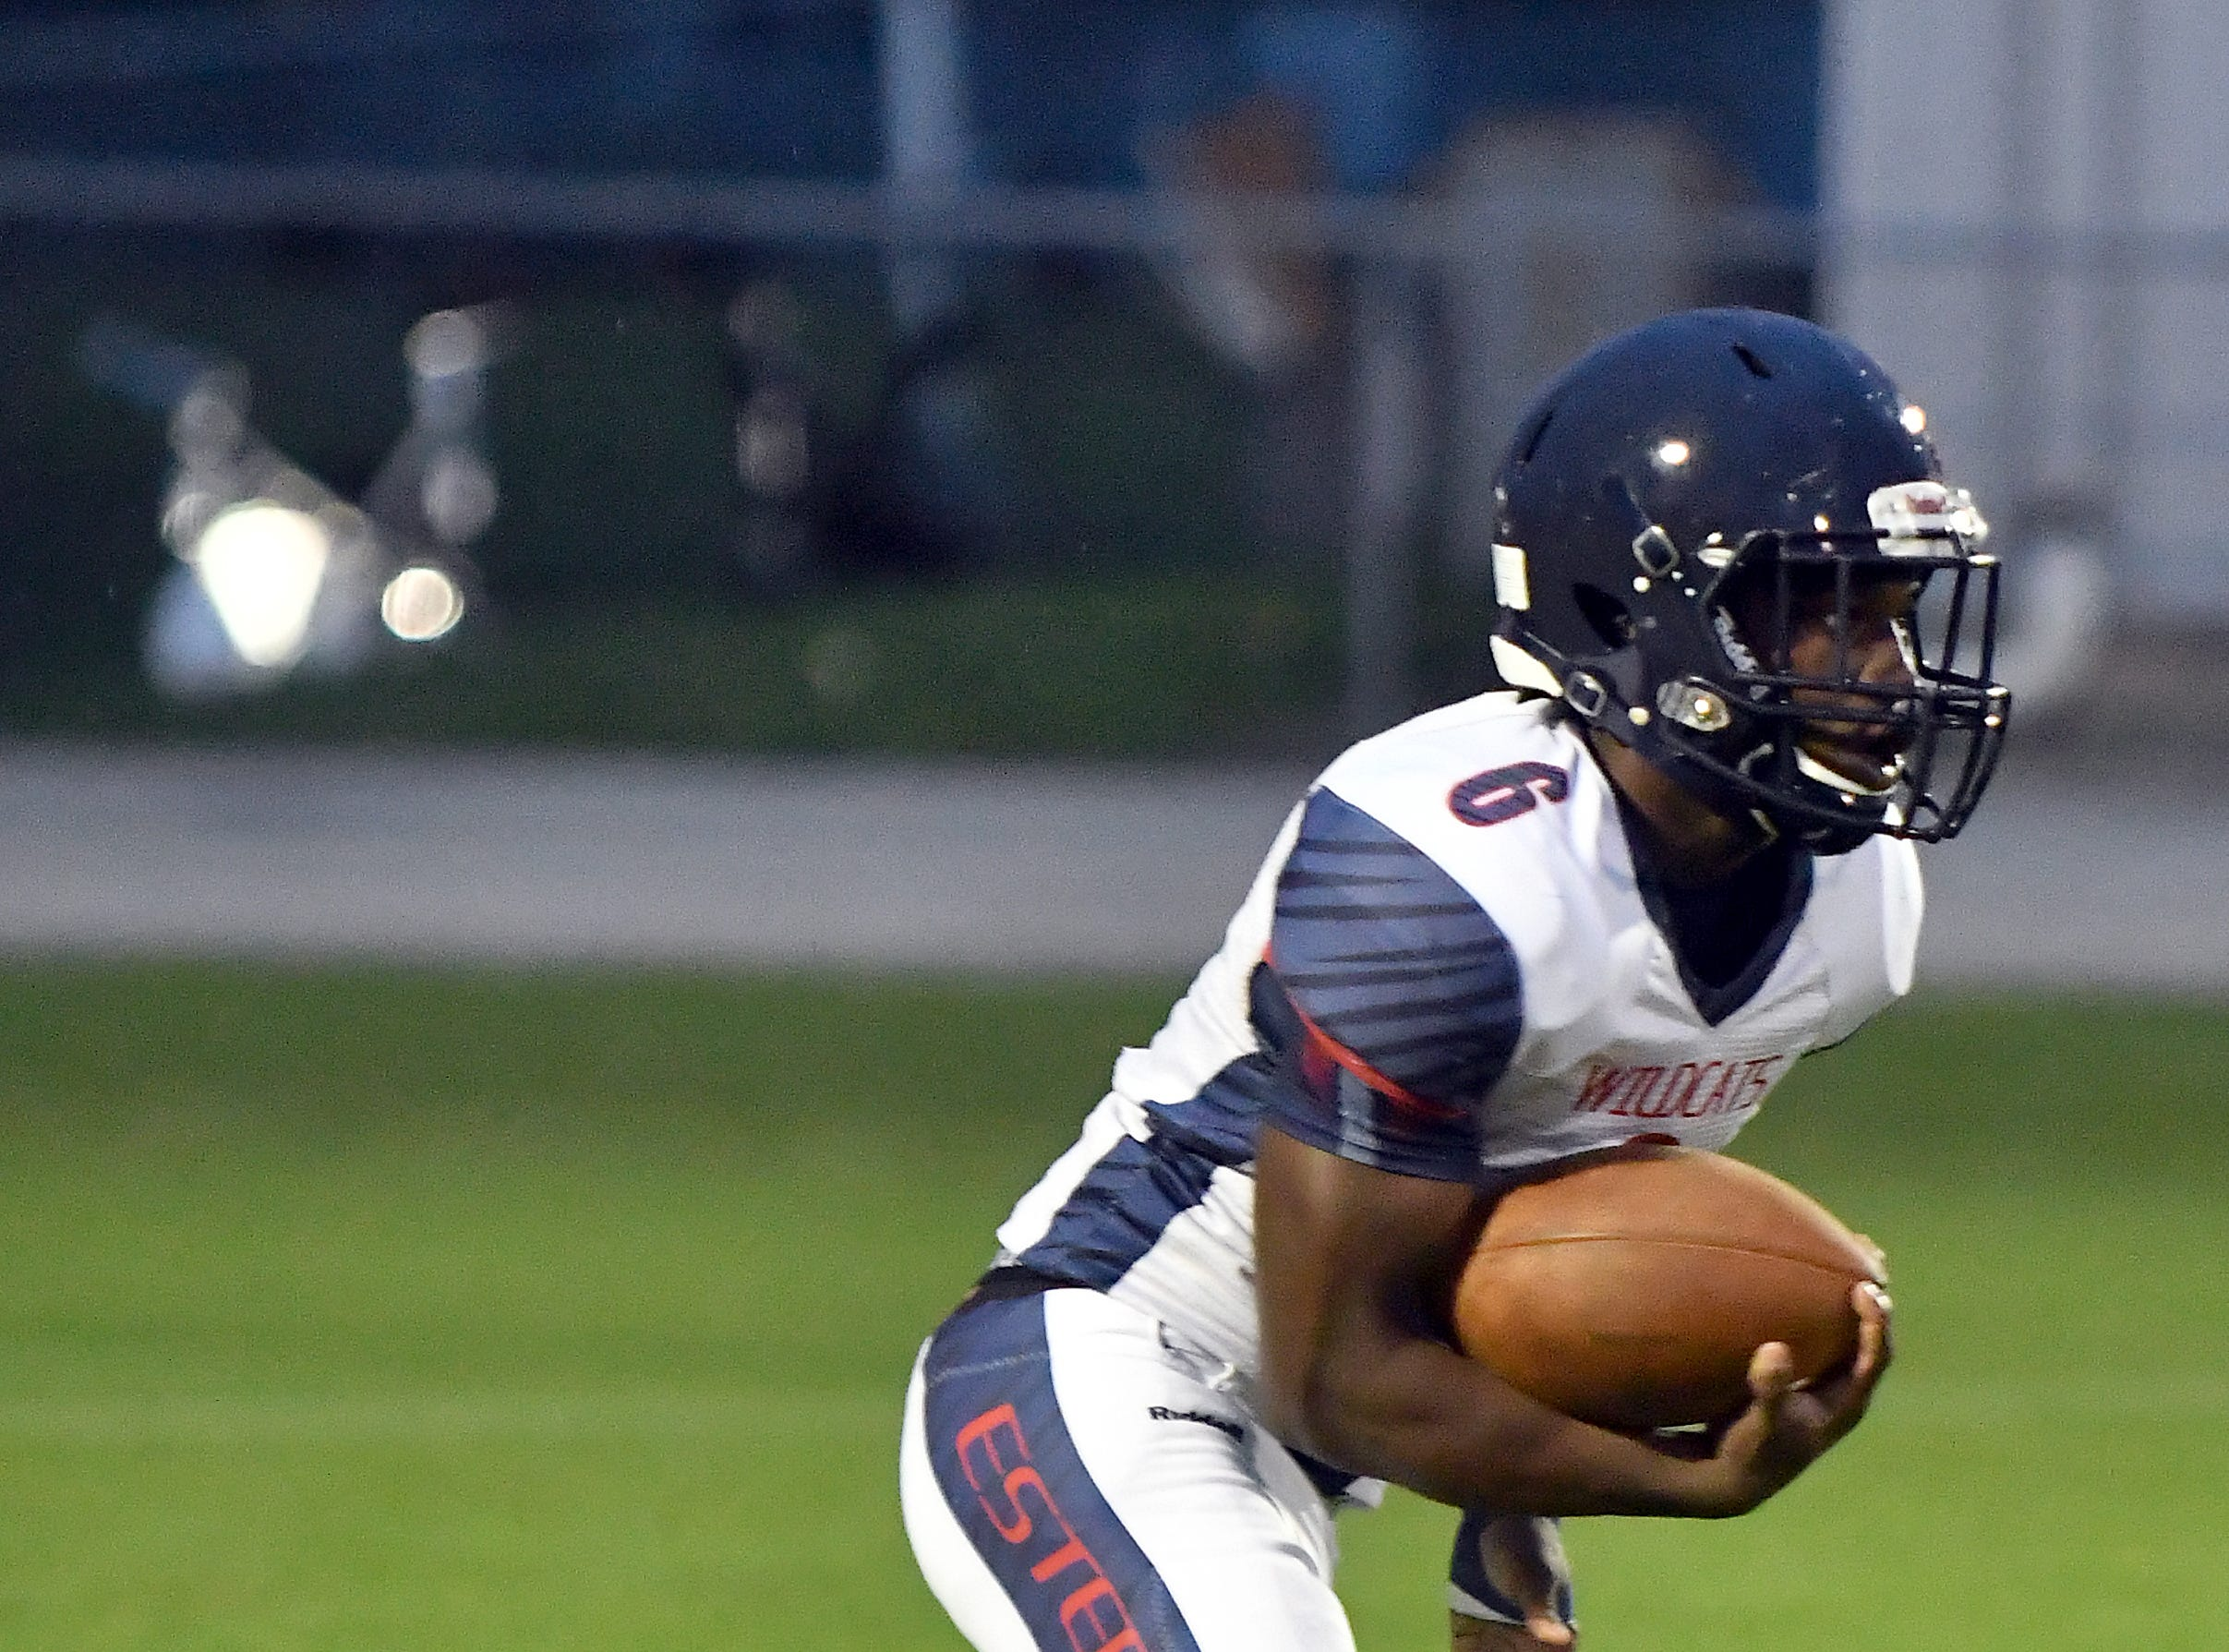 Estero High School running back Derrick Peart (6) runs the ball up field during their game with Mariner High School in Cape Coral , FL., Monday, Aug. 27, 2018.